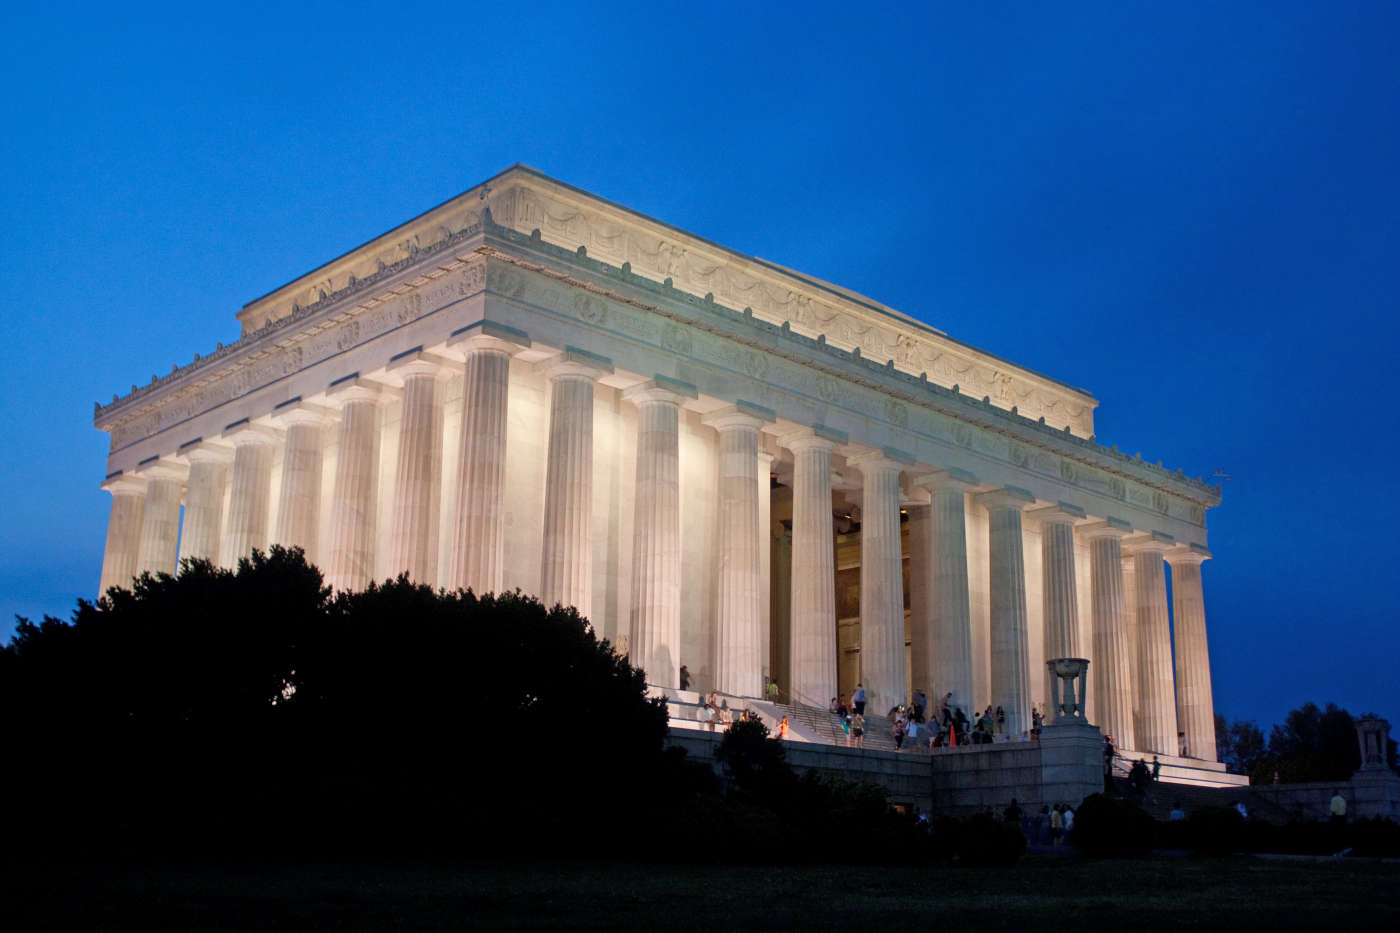 Tour the Lincoln Memorial at Twilight